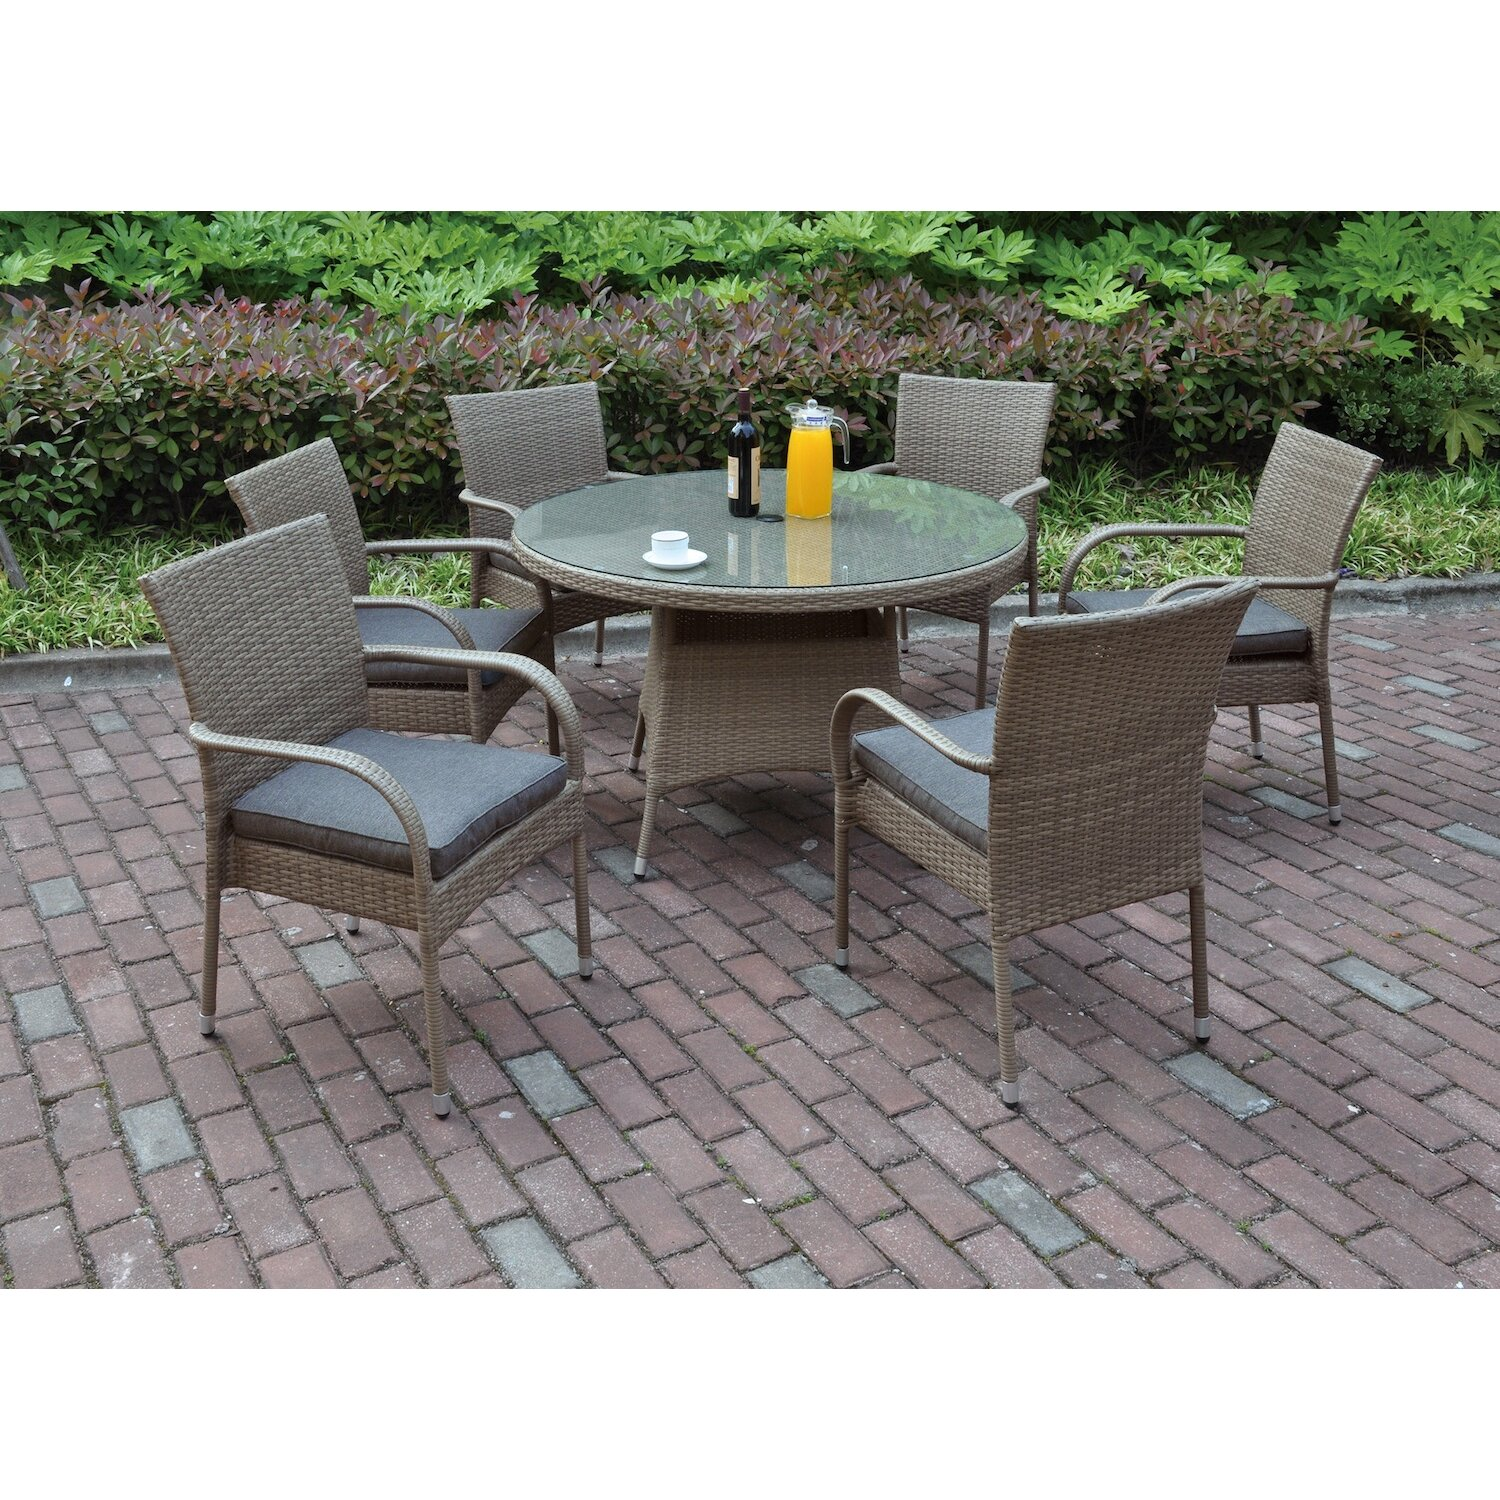 jb patio 7 piece dining set with cushions allmodern